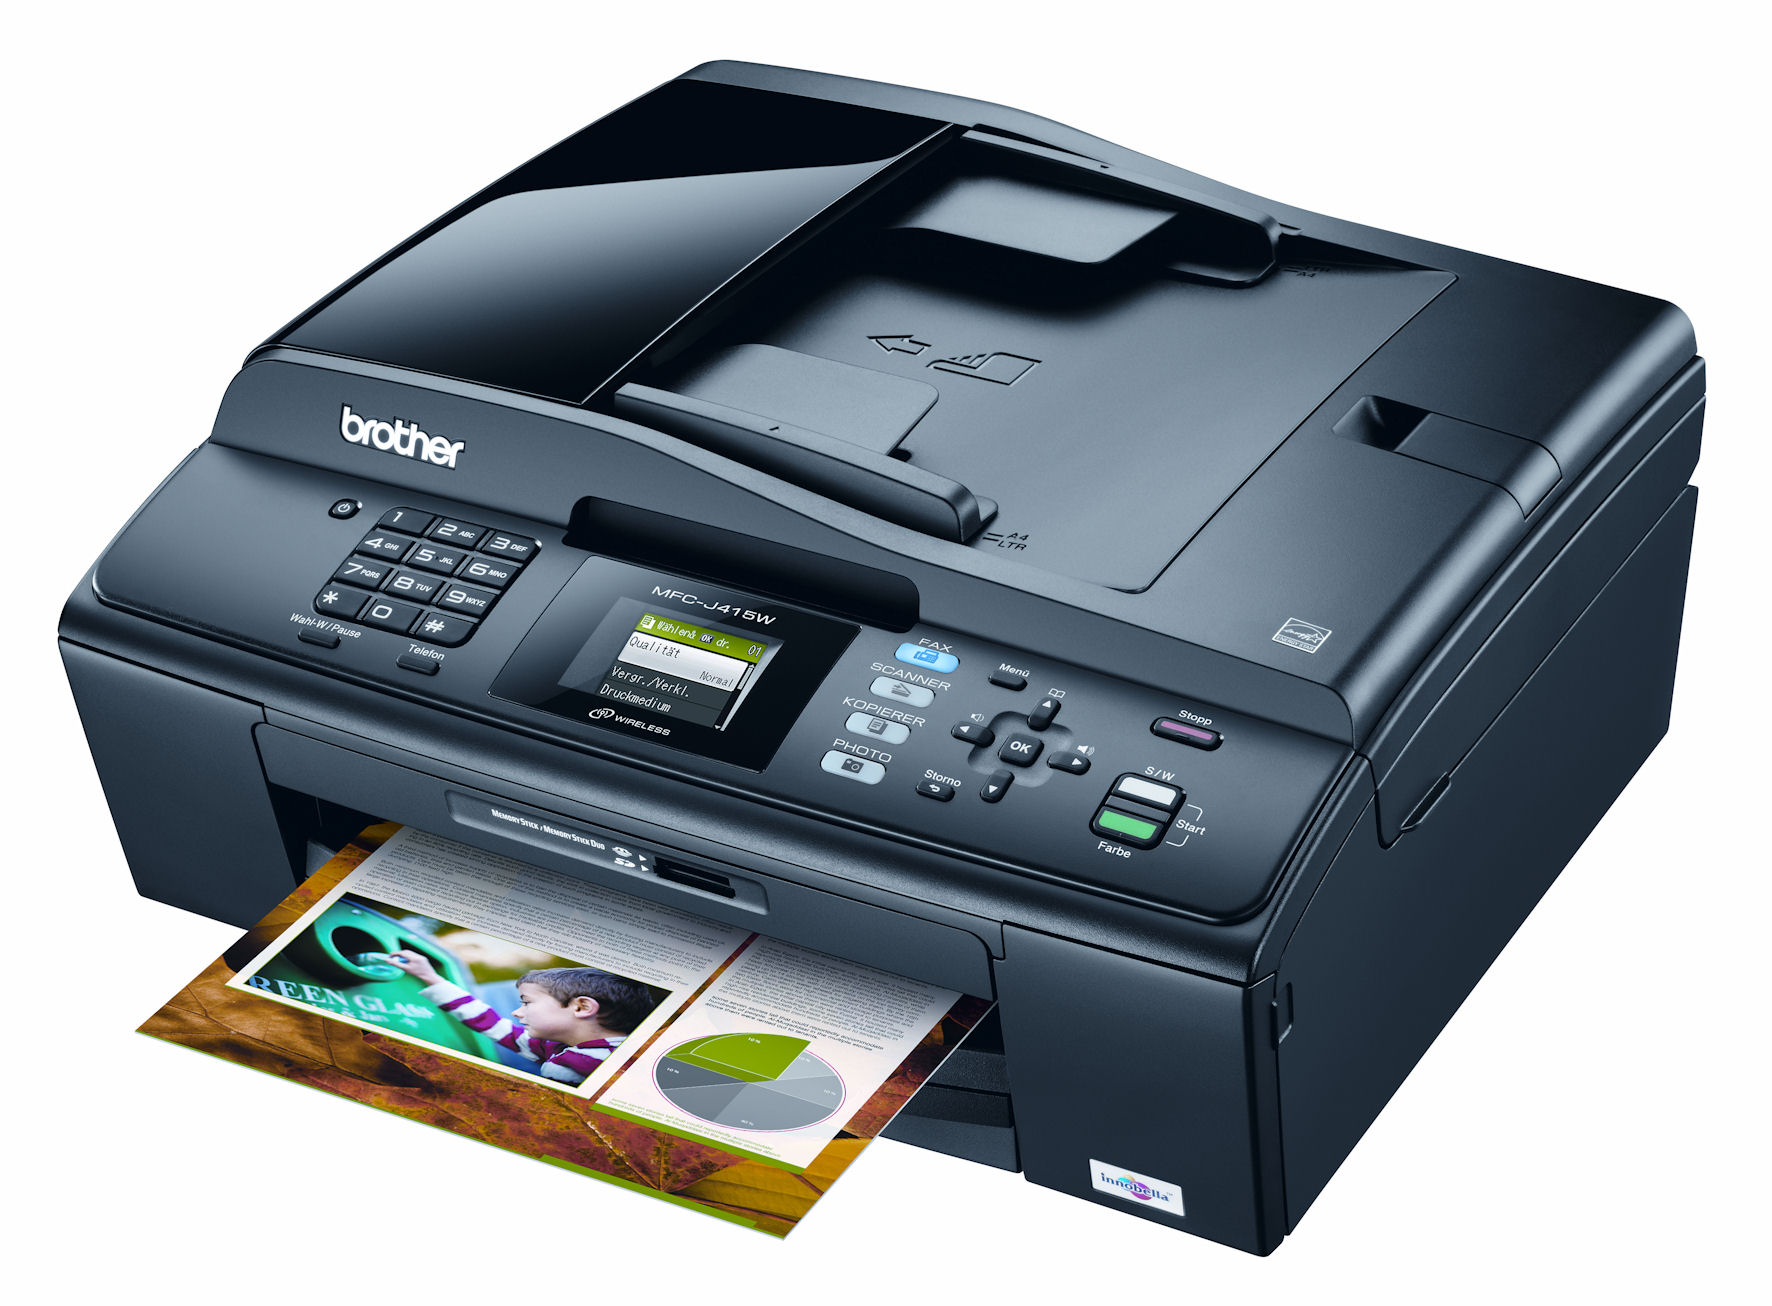 Brother Printers Require All Color Cartridges To Print Black And White